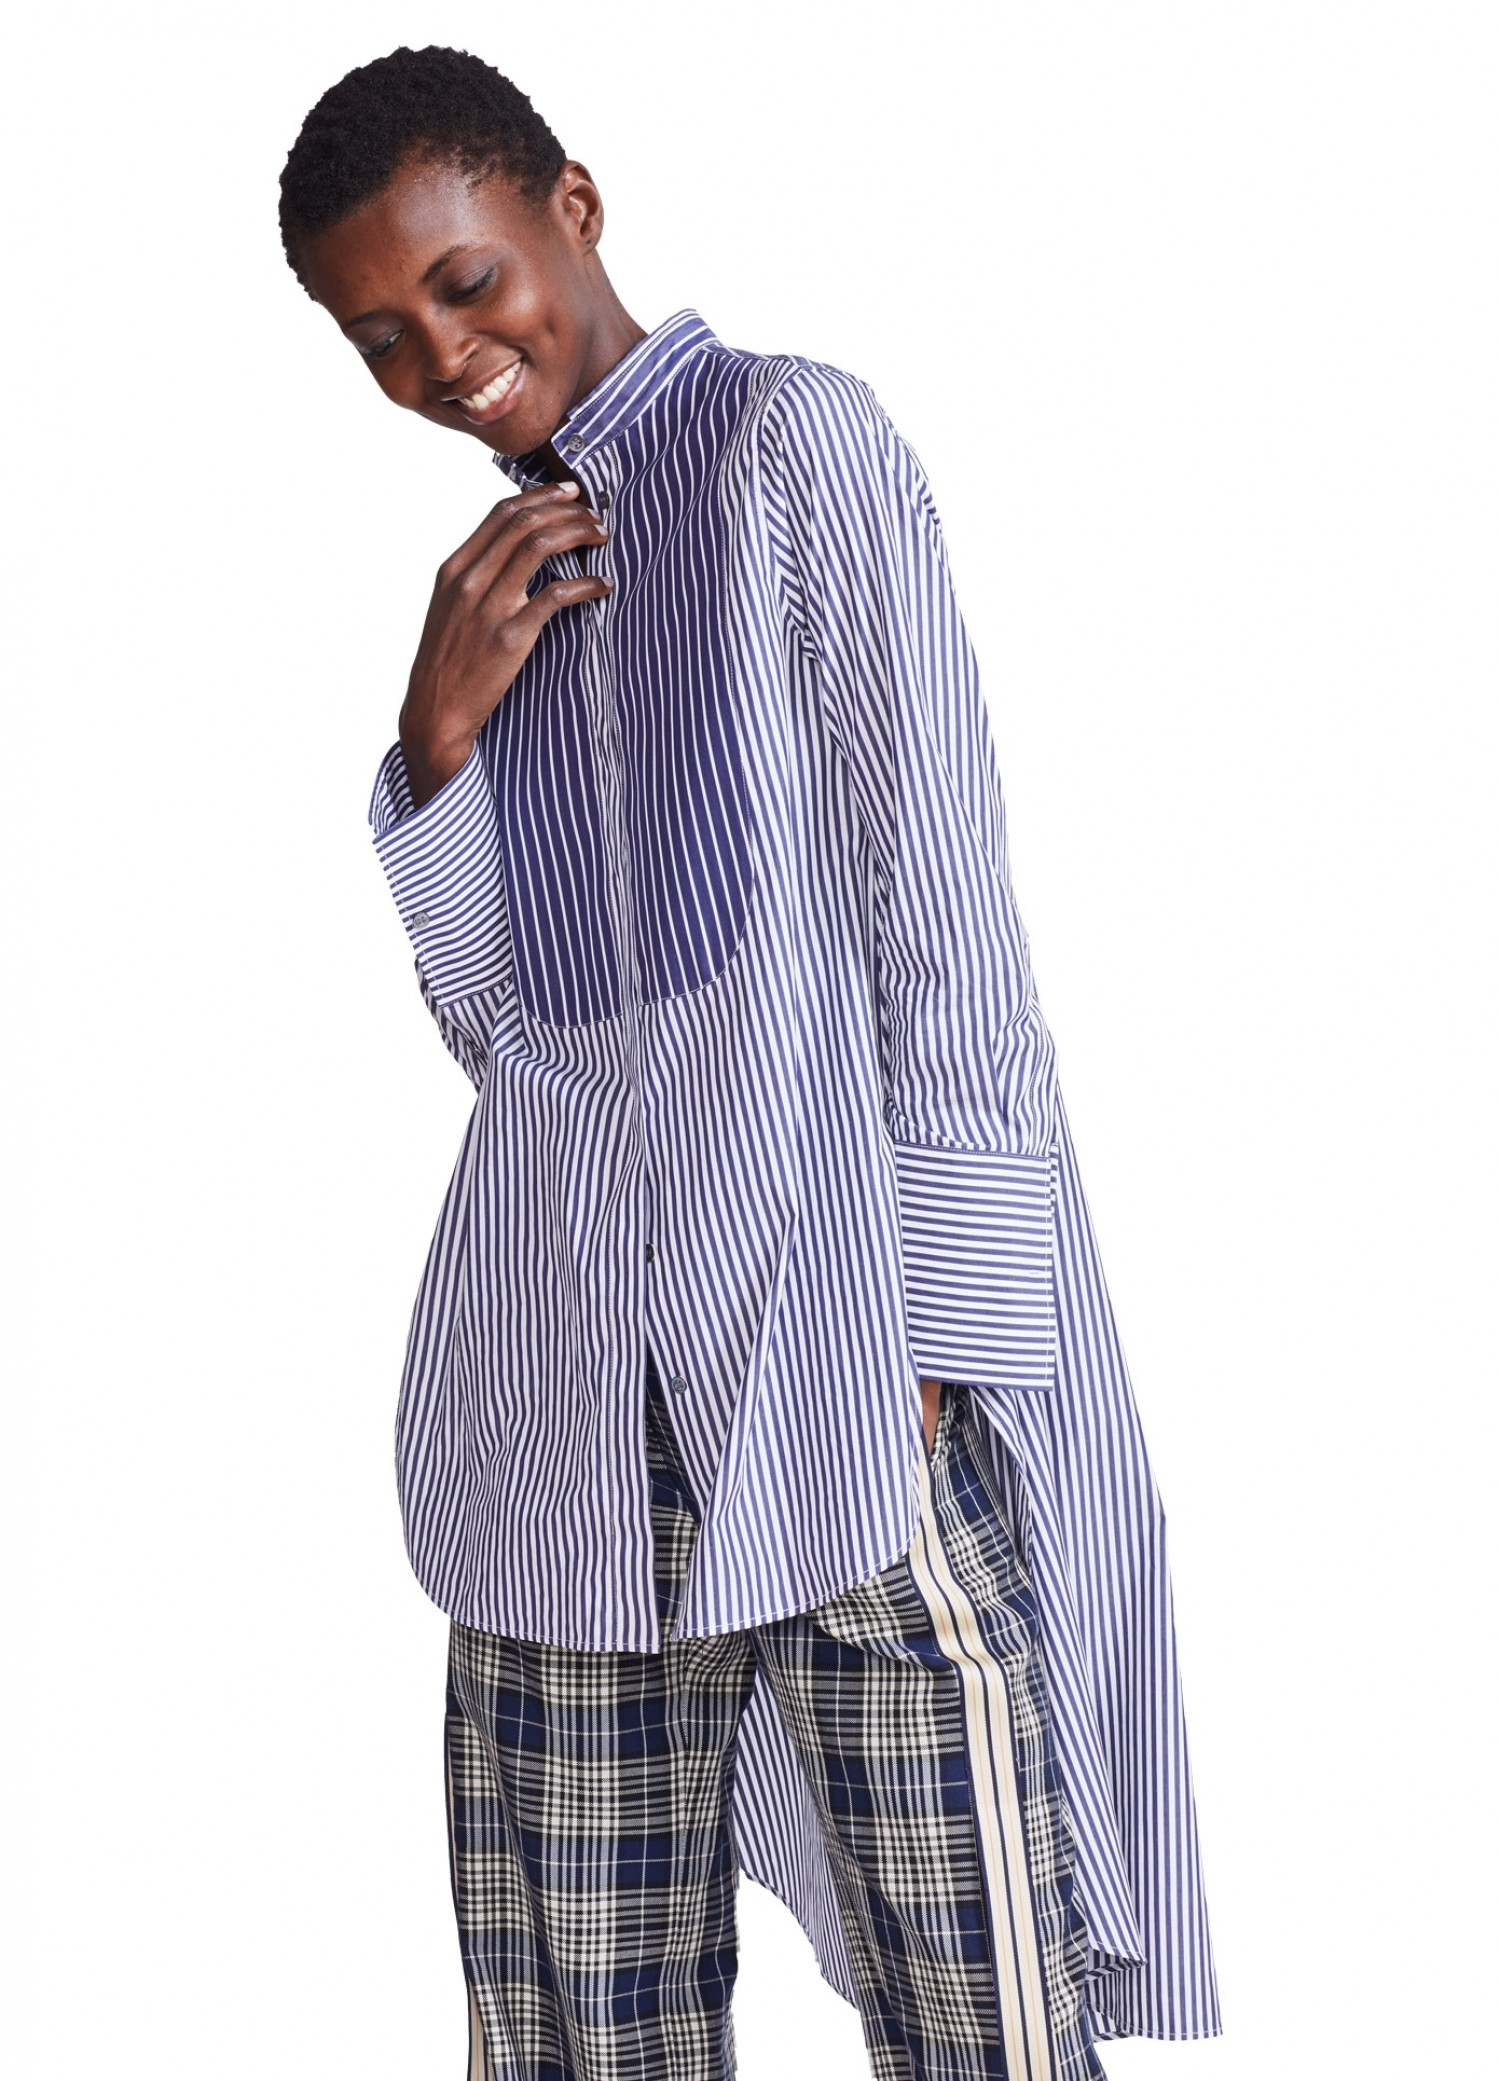 MONSE Typewriter Stripe Shirt on Model Front View